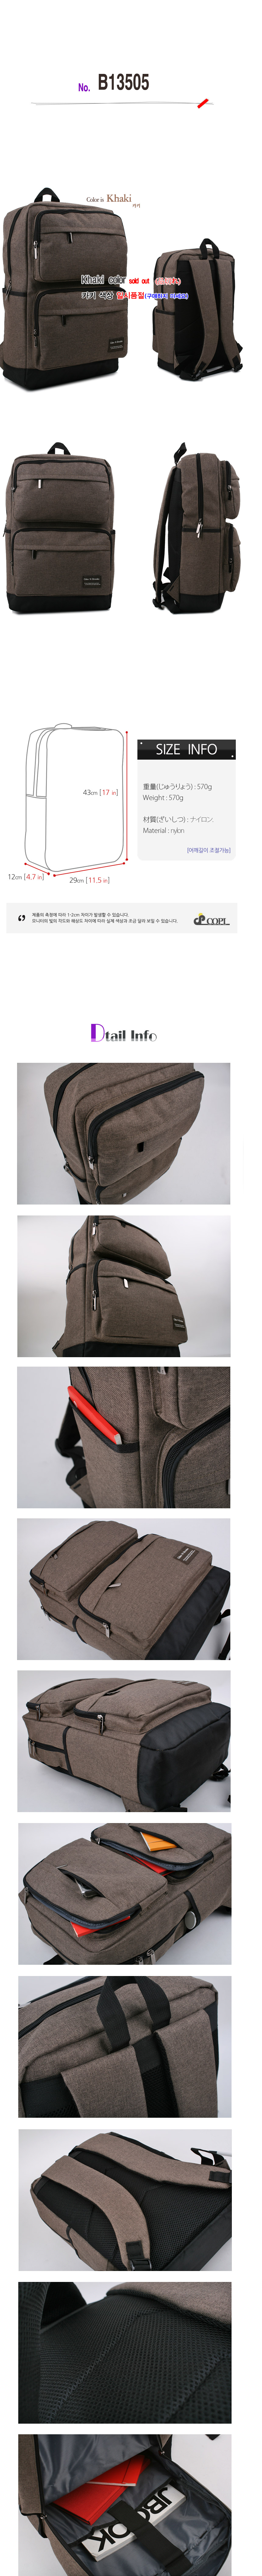 backpack no.B13498view